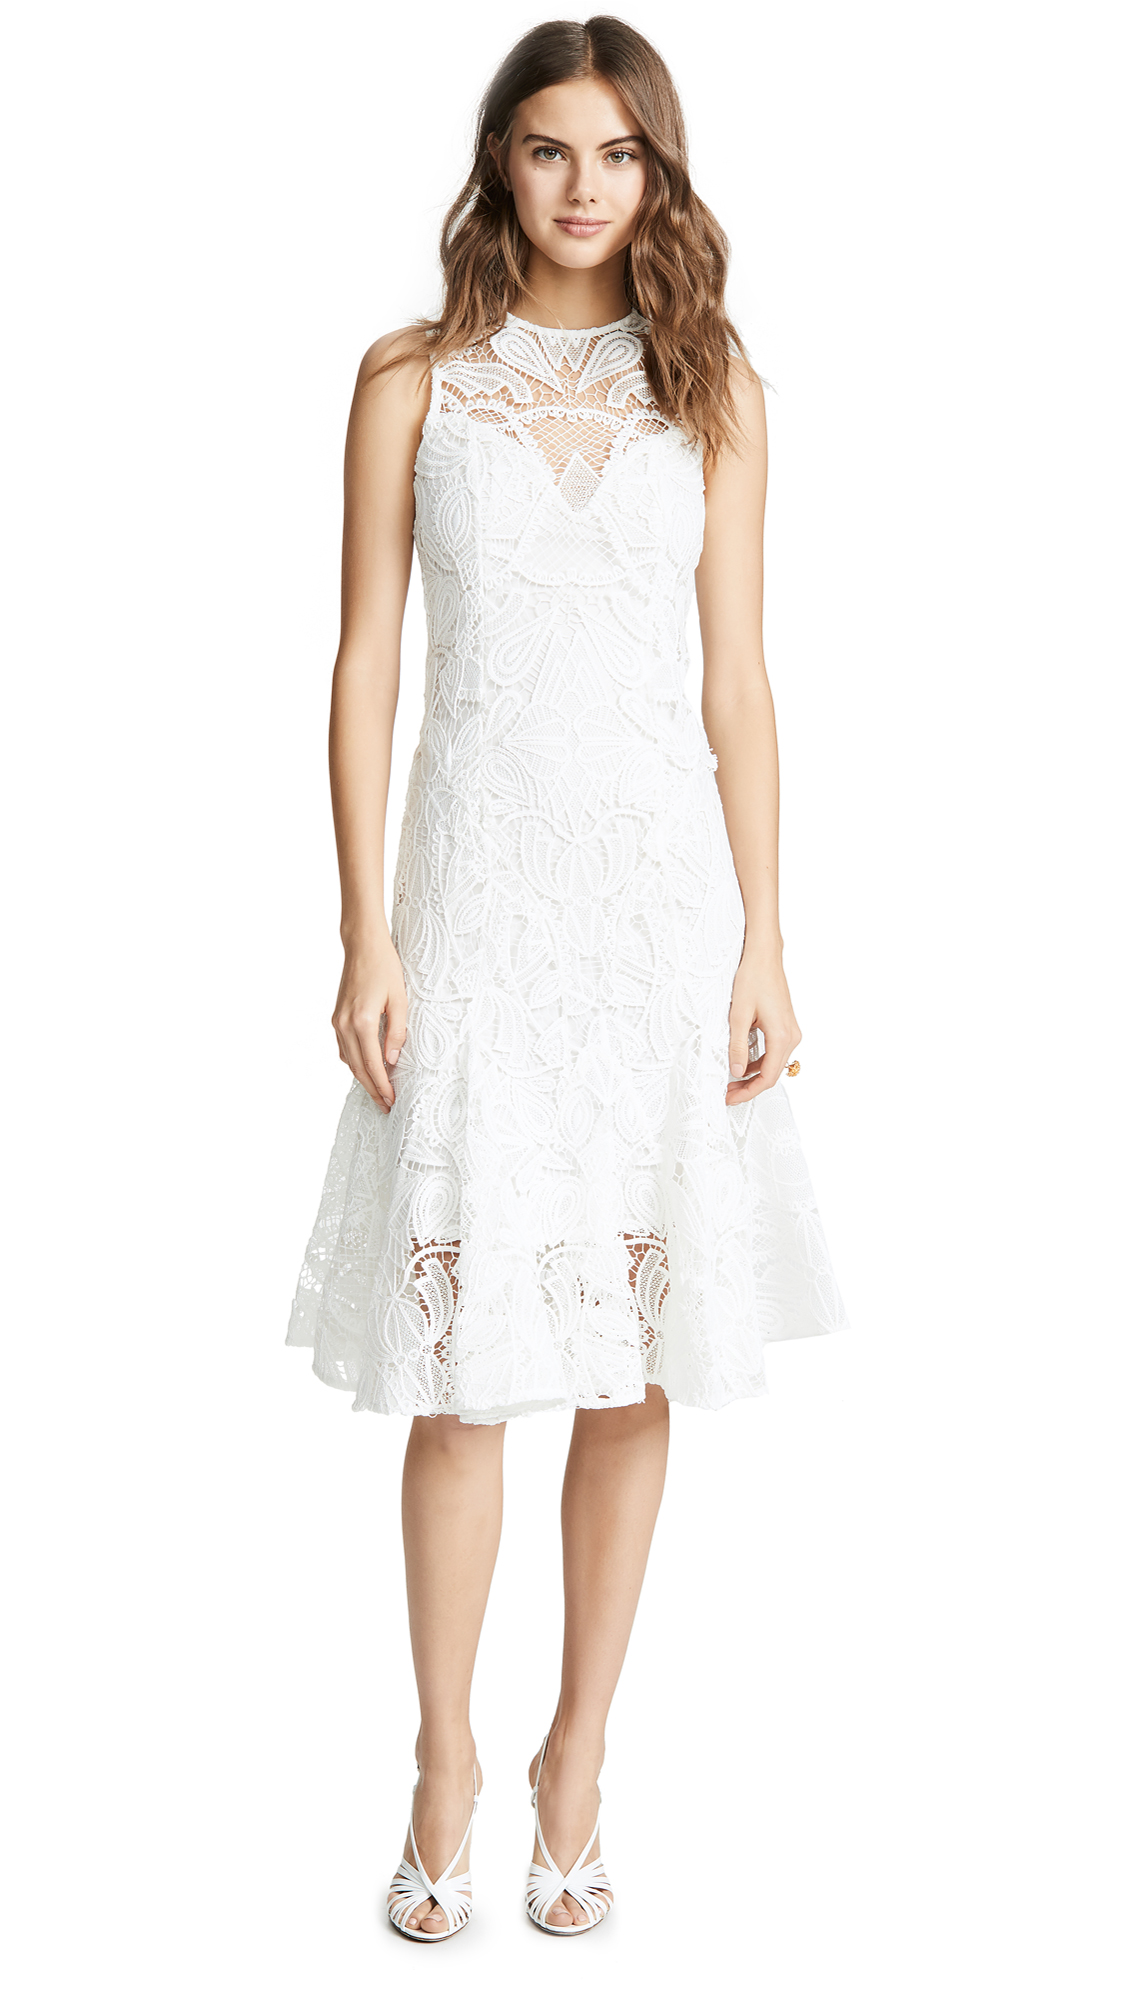 THURLEY Biarritz Dress in Ivory